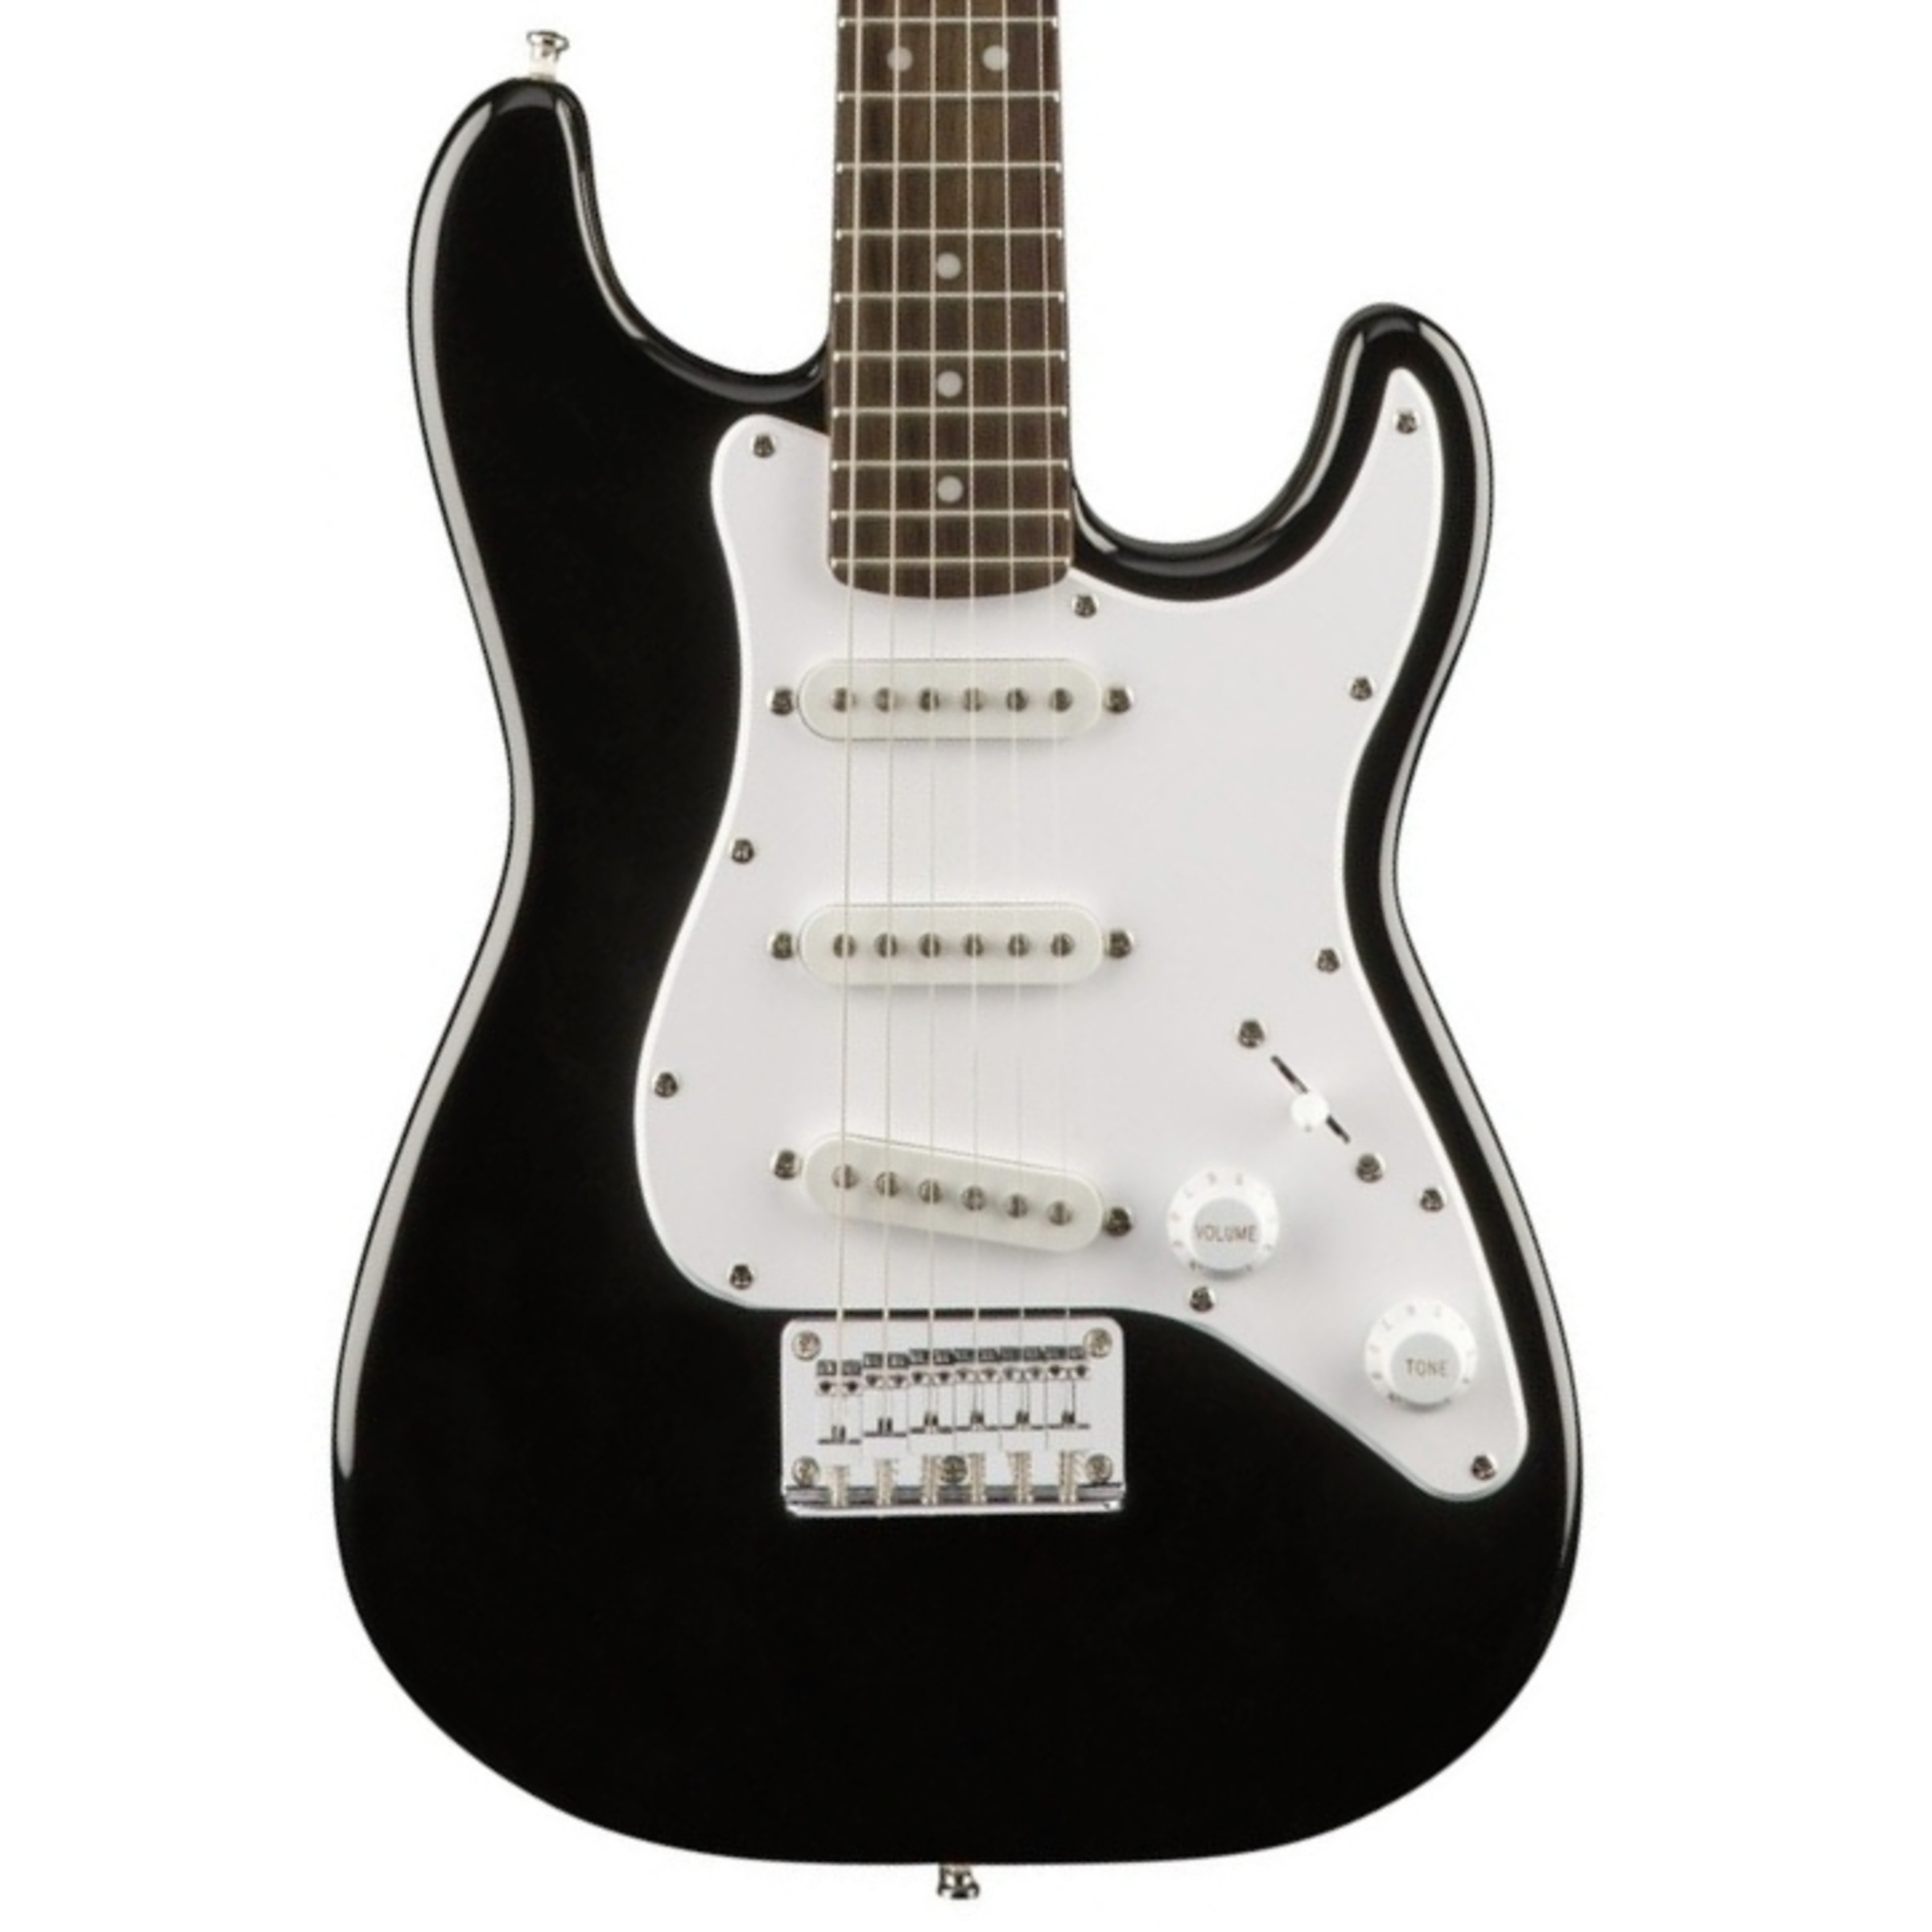 squier mini 3 4 size electric guitar v2 giggear. Black Bedroom Furniture Sets. Home Design Ideas